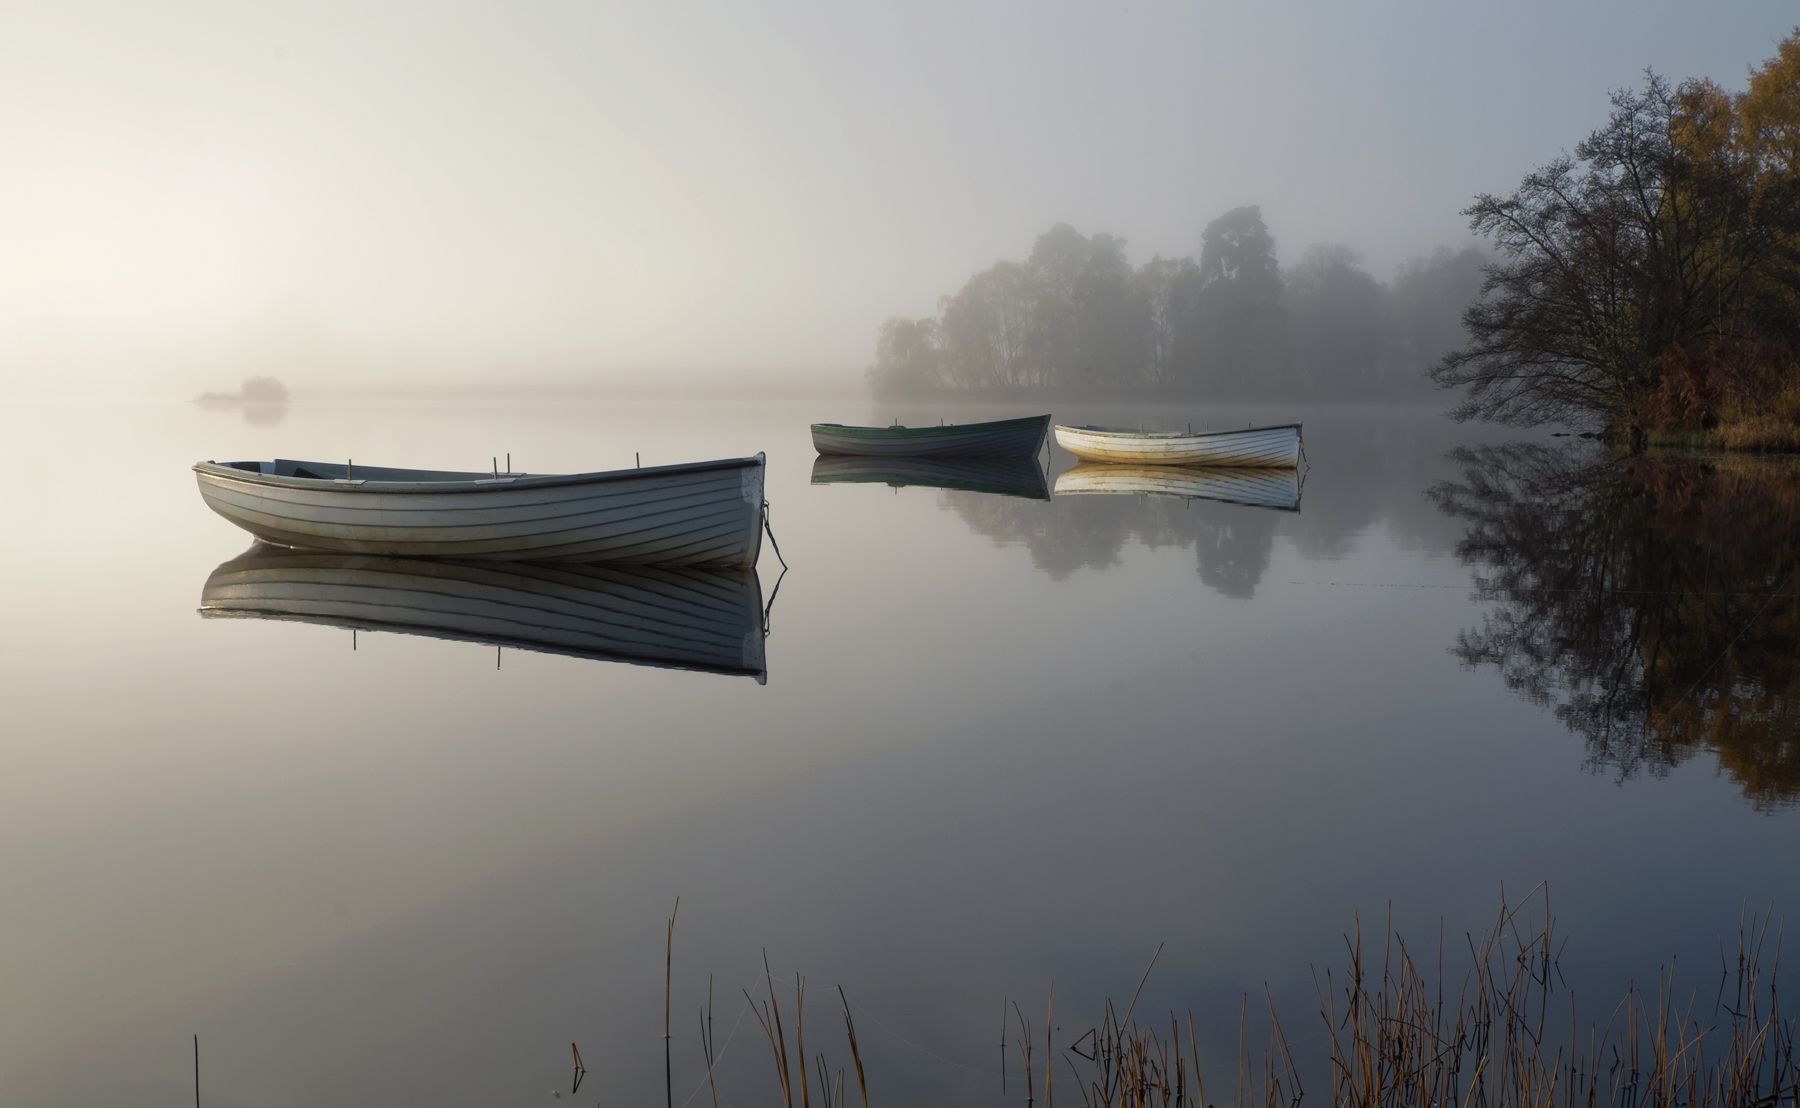 Heavenly Harbour, beautiful, mist, filtered, sunlight, birch, monochromatic, mooring, secluded, reeds, row boats, bracke, photo